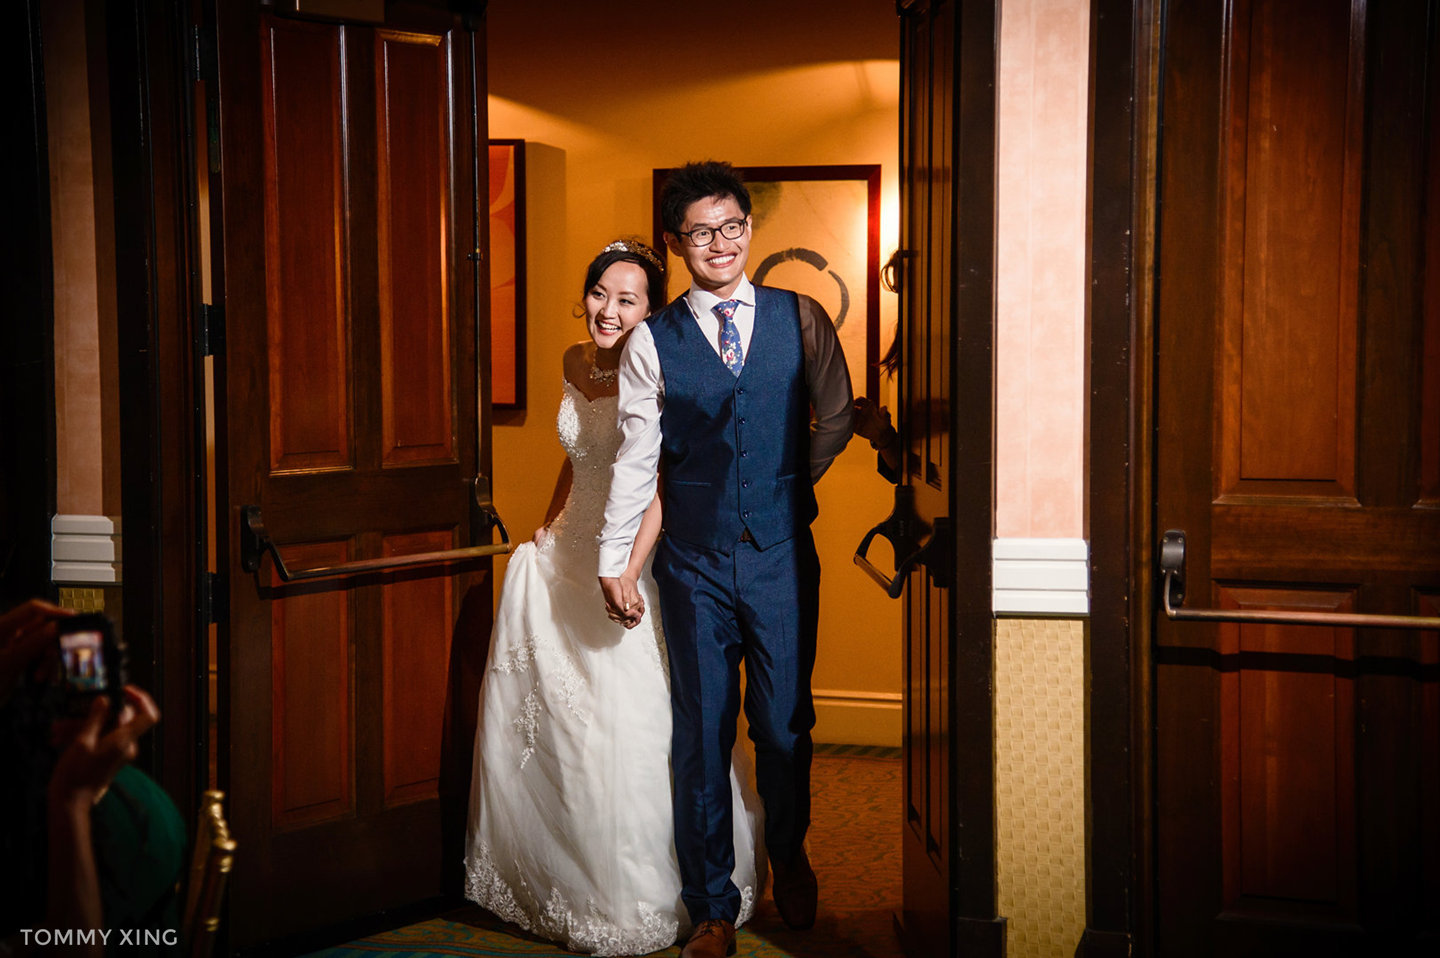 Paradise Point Resort Wedding Xiaolu & Bin San Diego 圣地亚哥婚礼摄影跟拍 Tommy Xing Photography 洛杉矶婚礼婚纱照摄影师 222.jpg